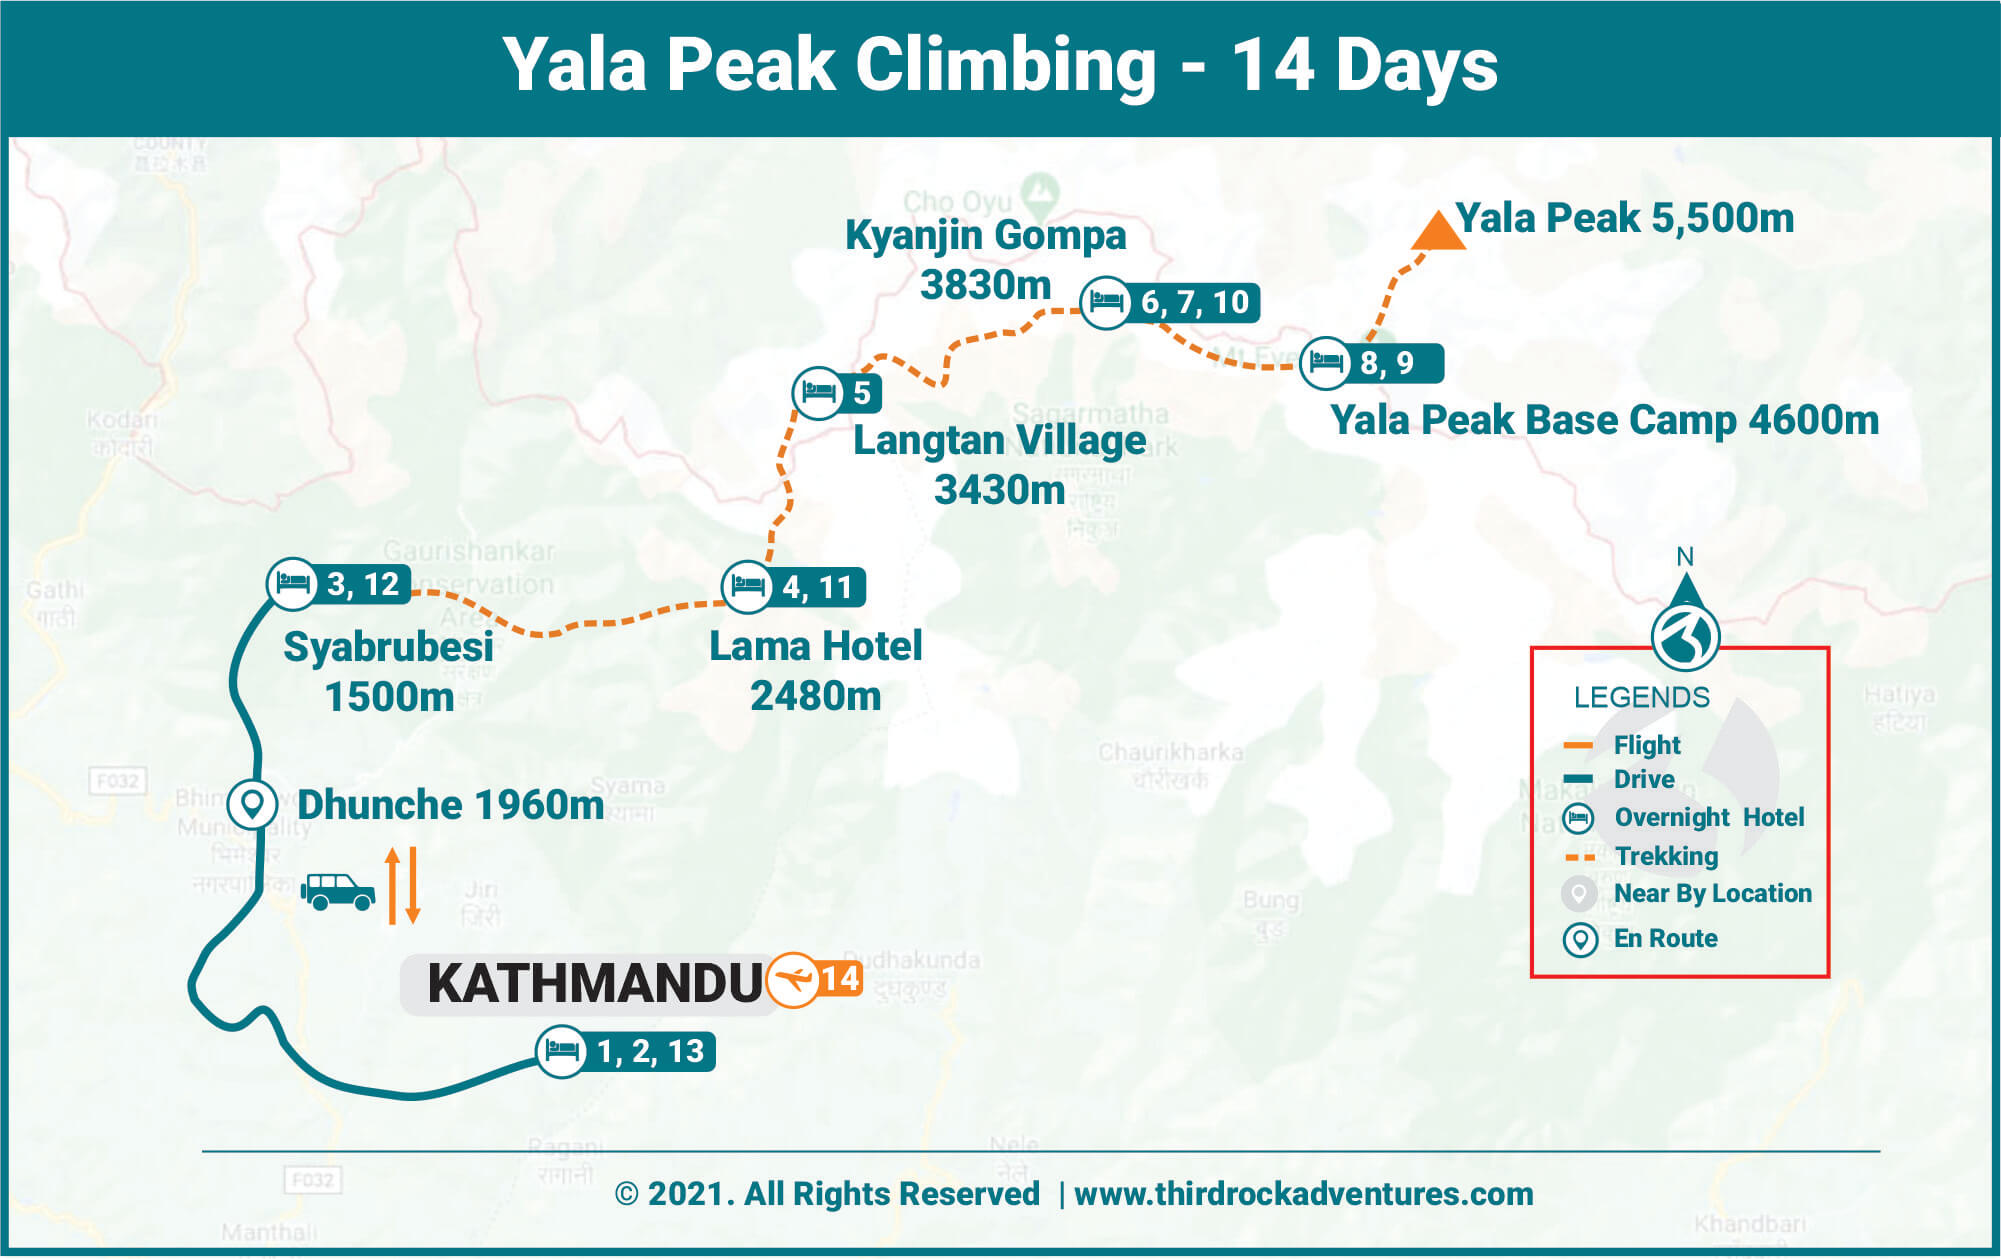 Yala Peak Climbing 14 days Route Map